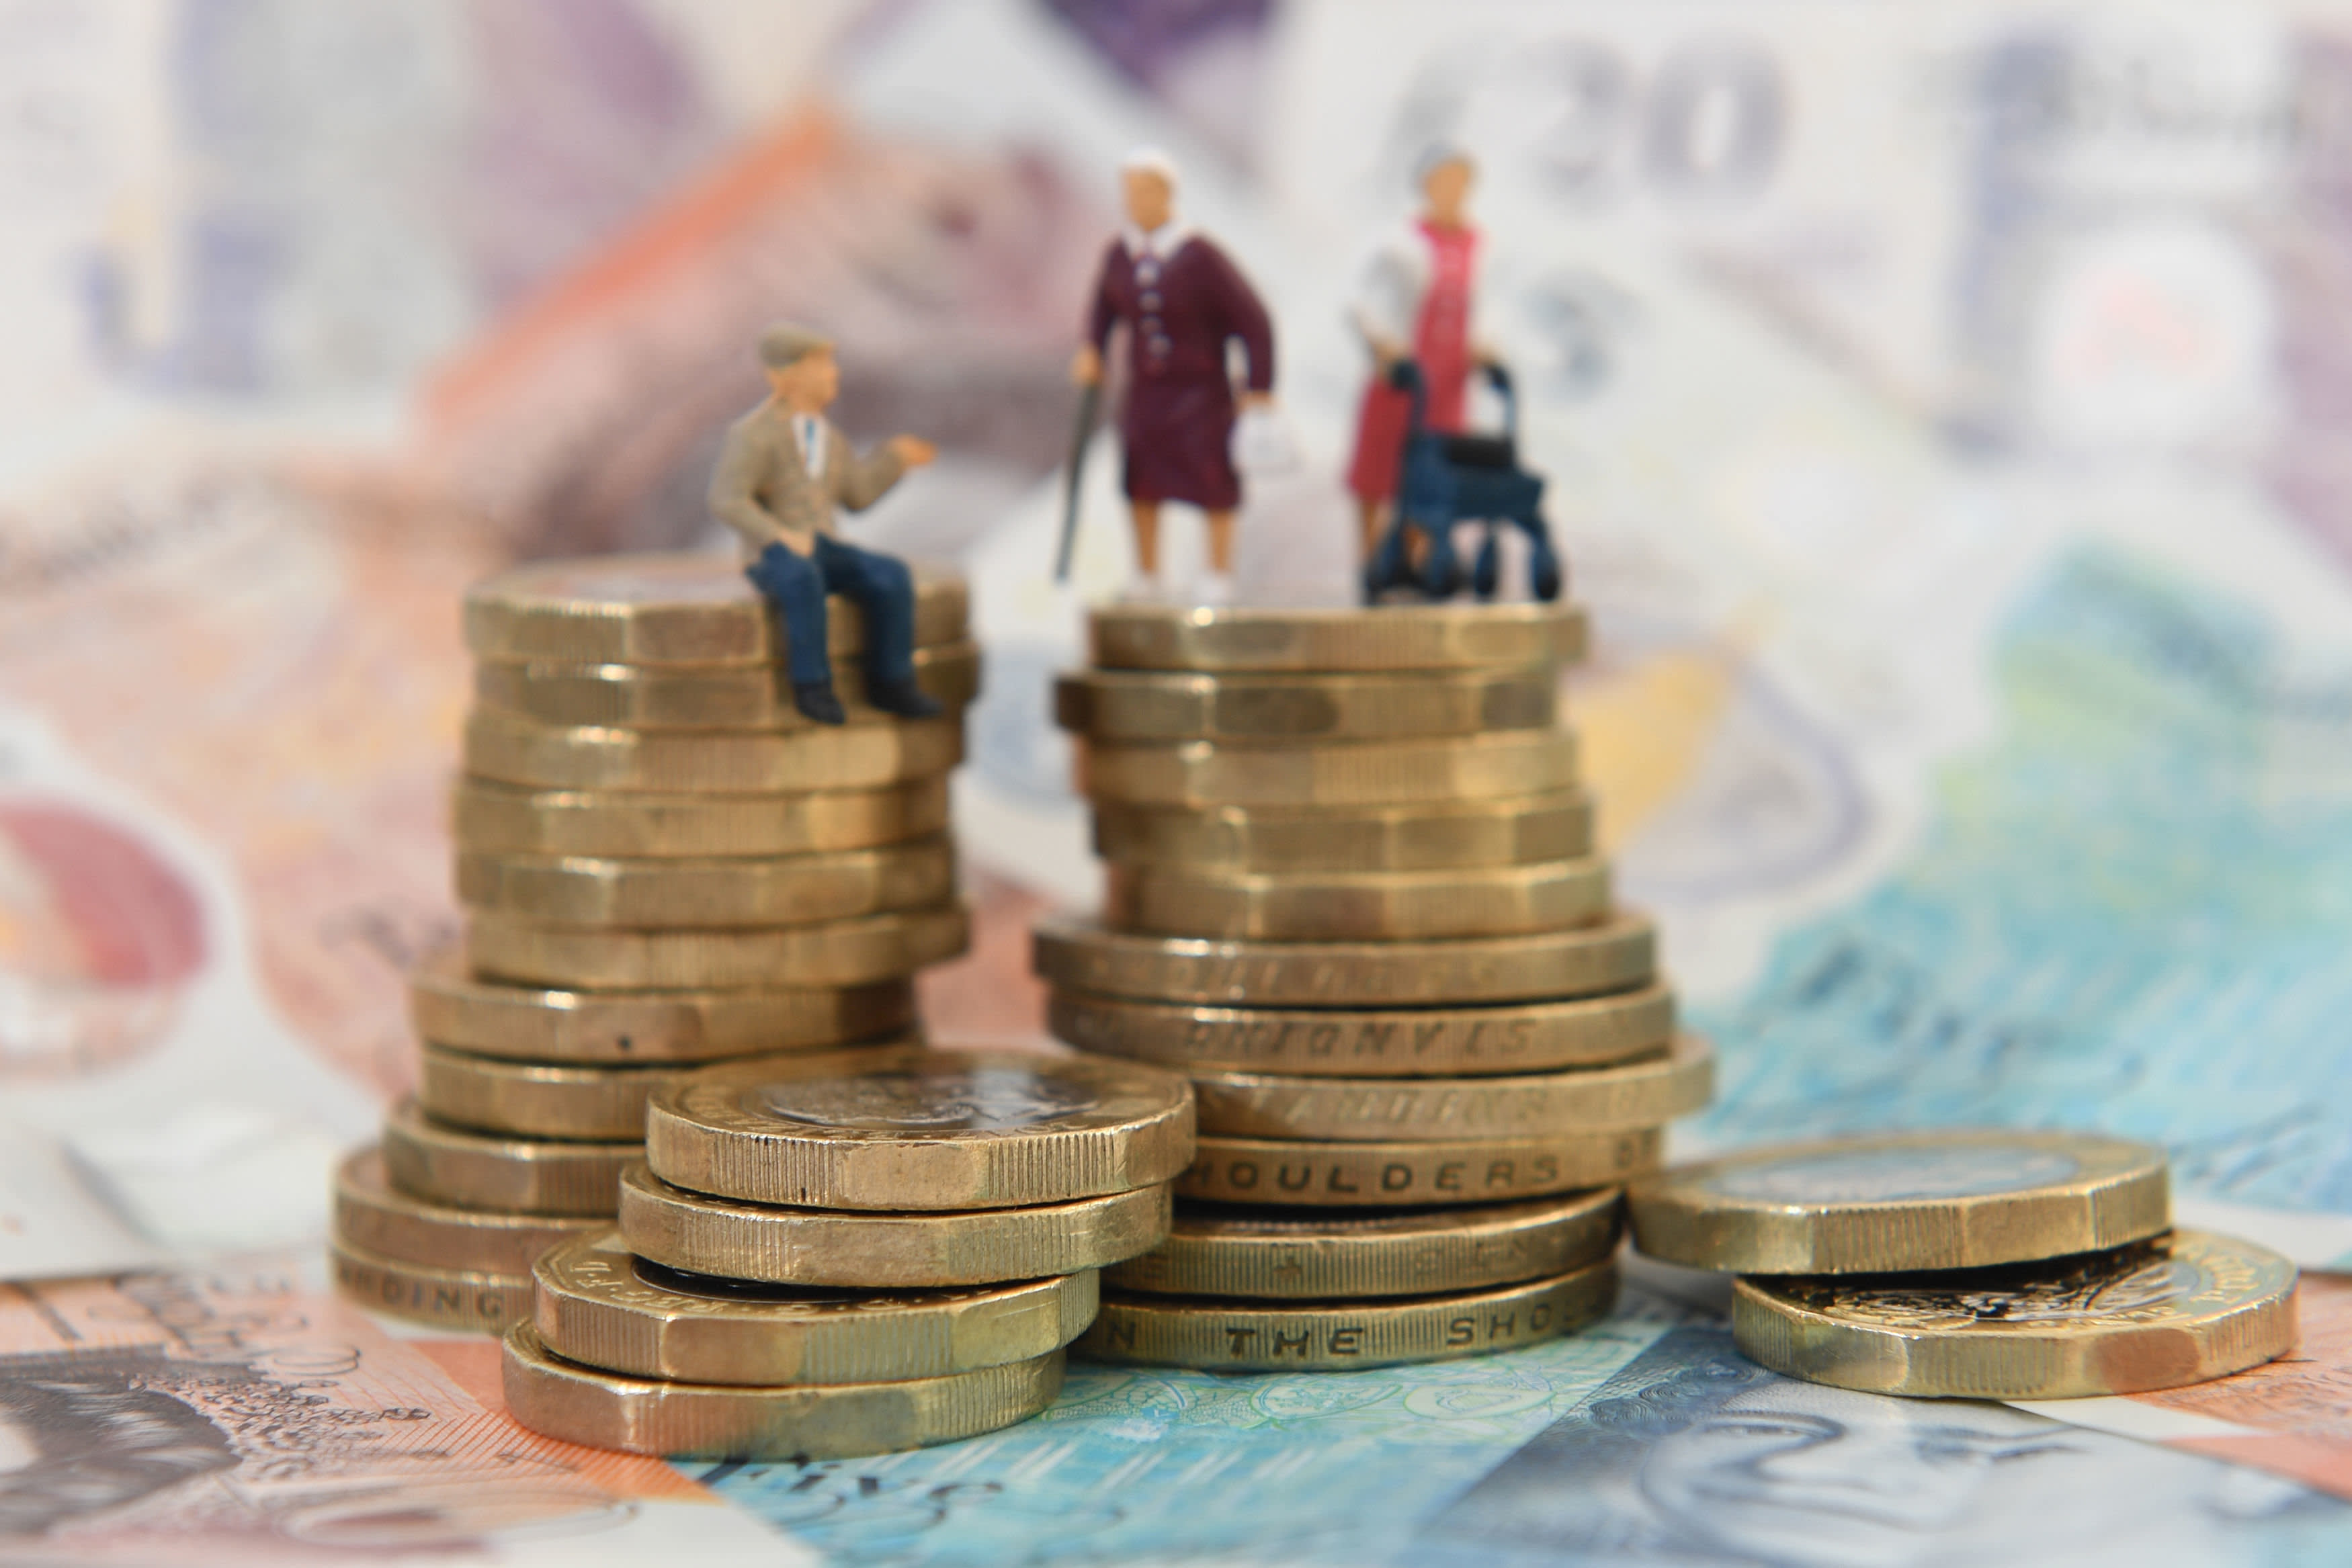 MPs call for sidecar savings option in auto-enrolment